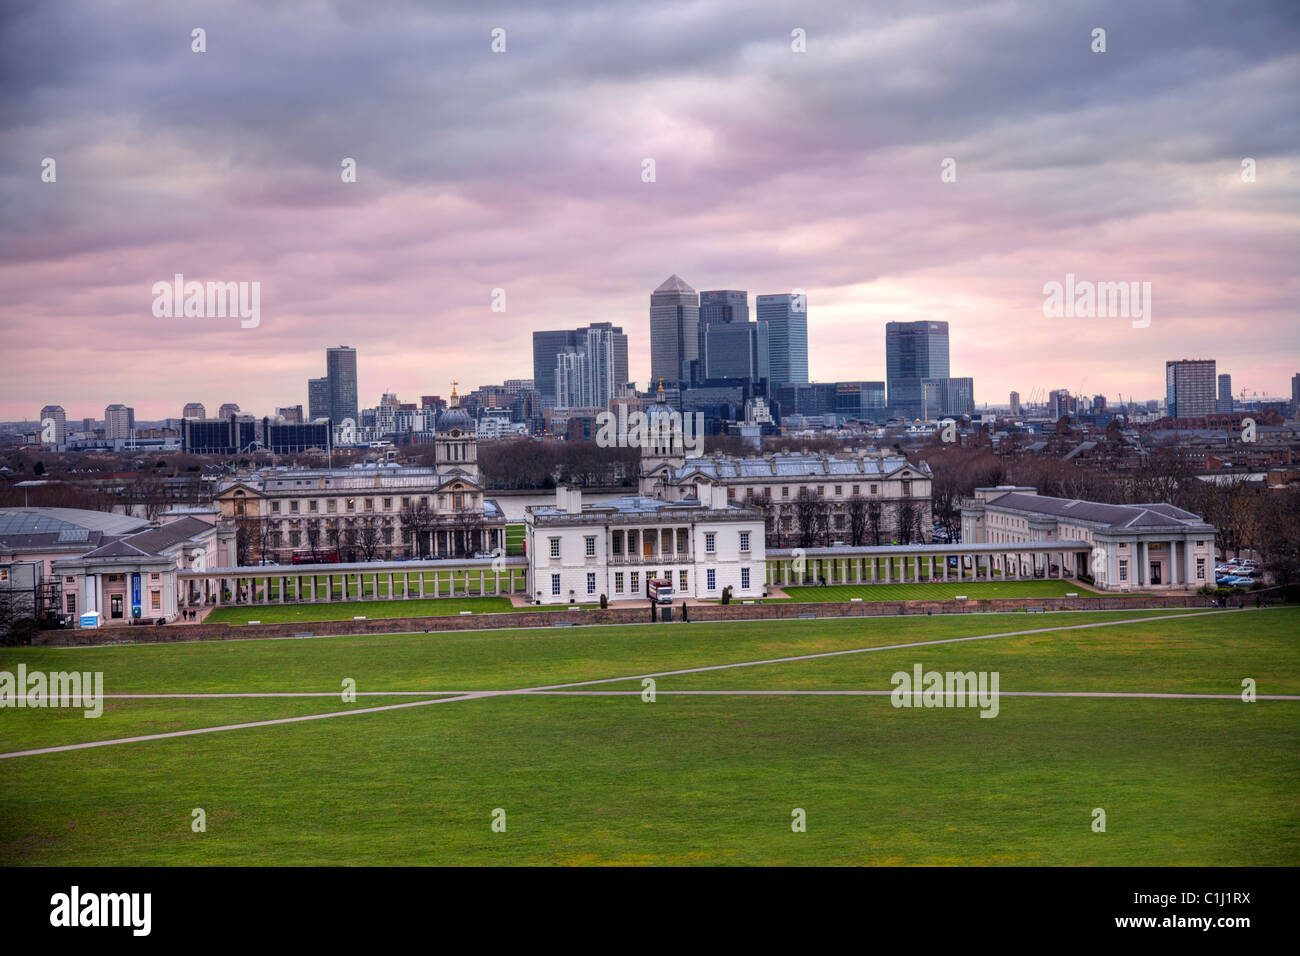 View of Docklands and Greenwich university London - Stock Image